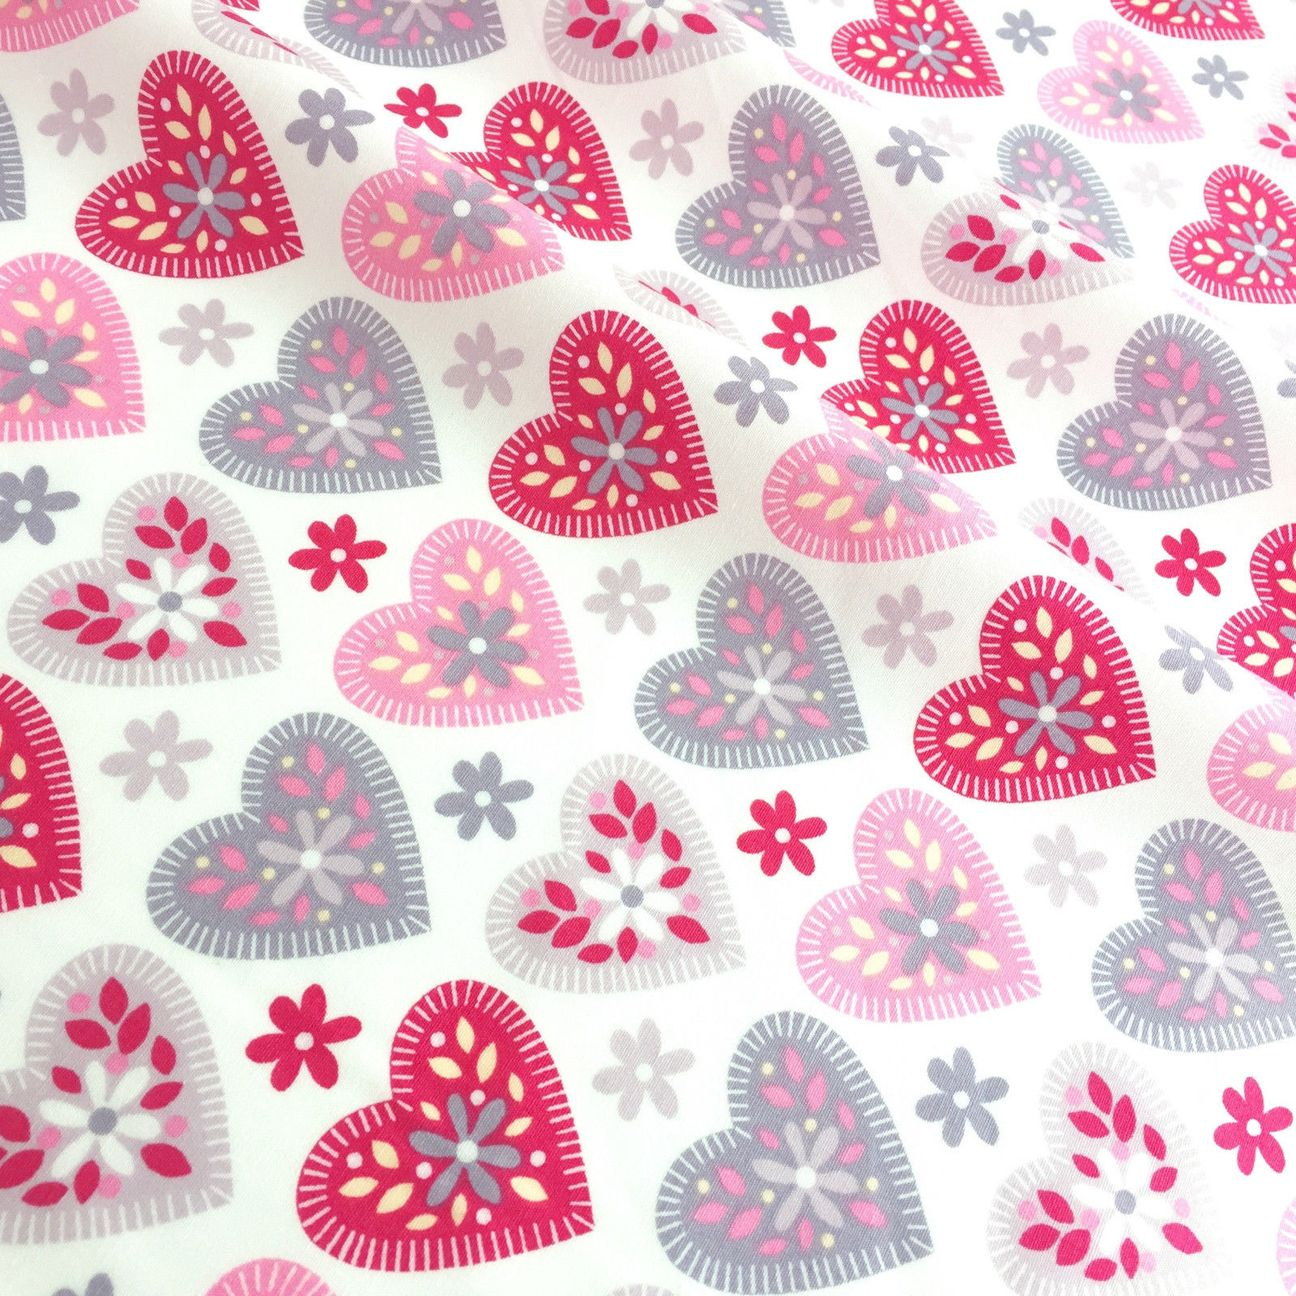 Rose & Hubble white & pink summer love heart cotton fabric